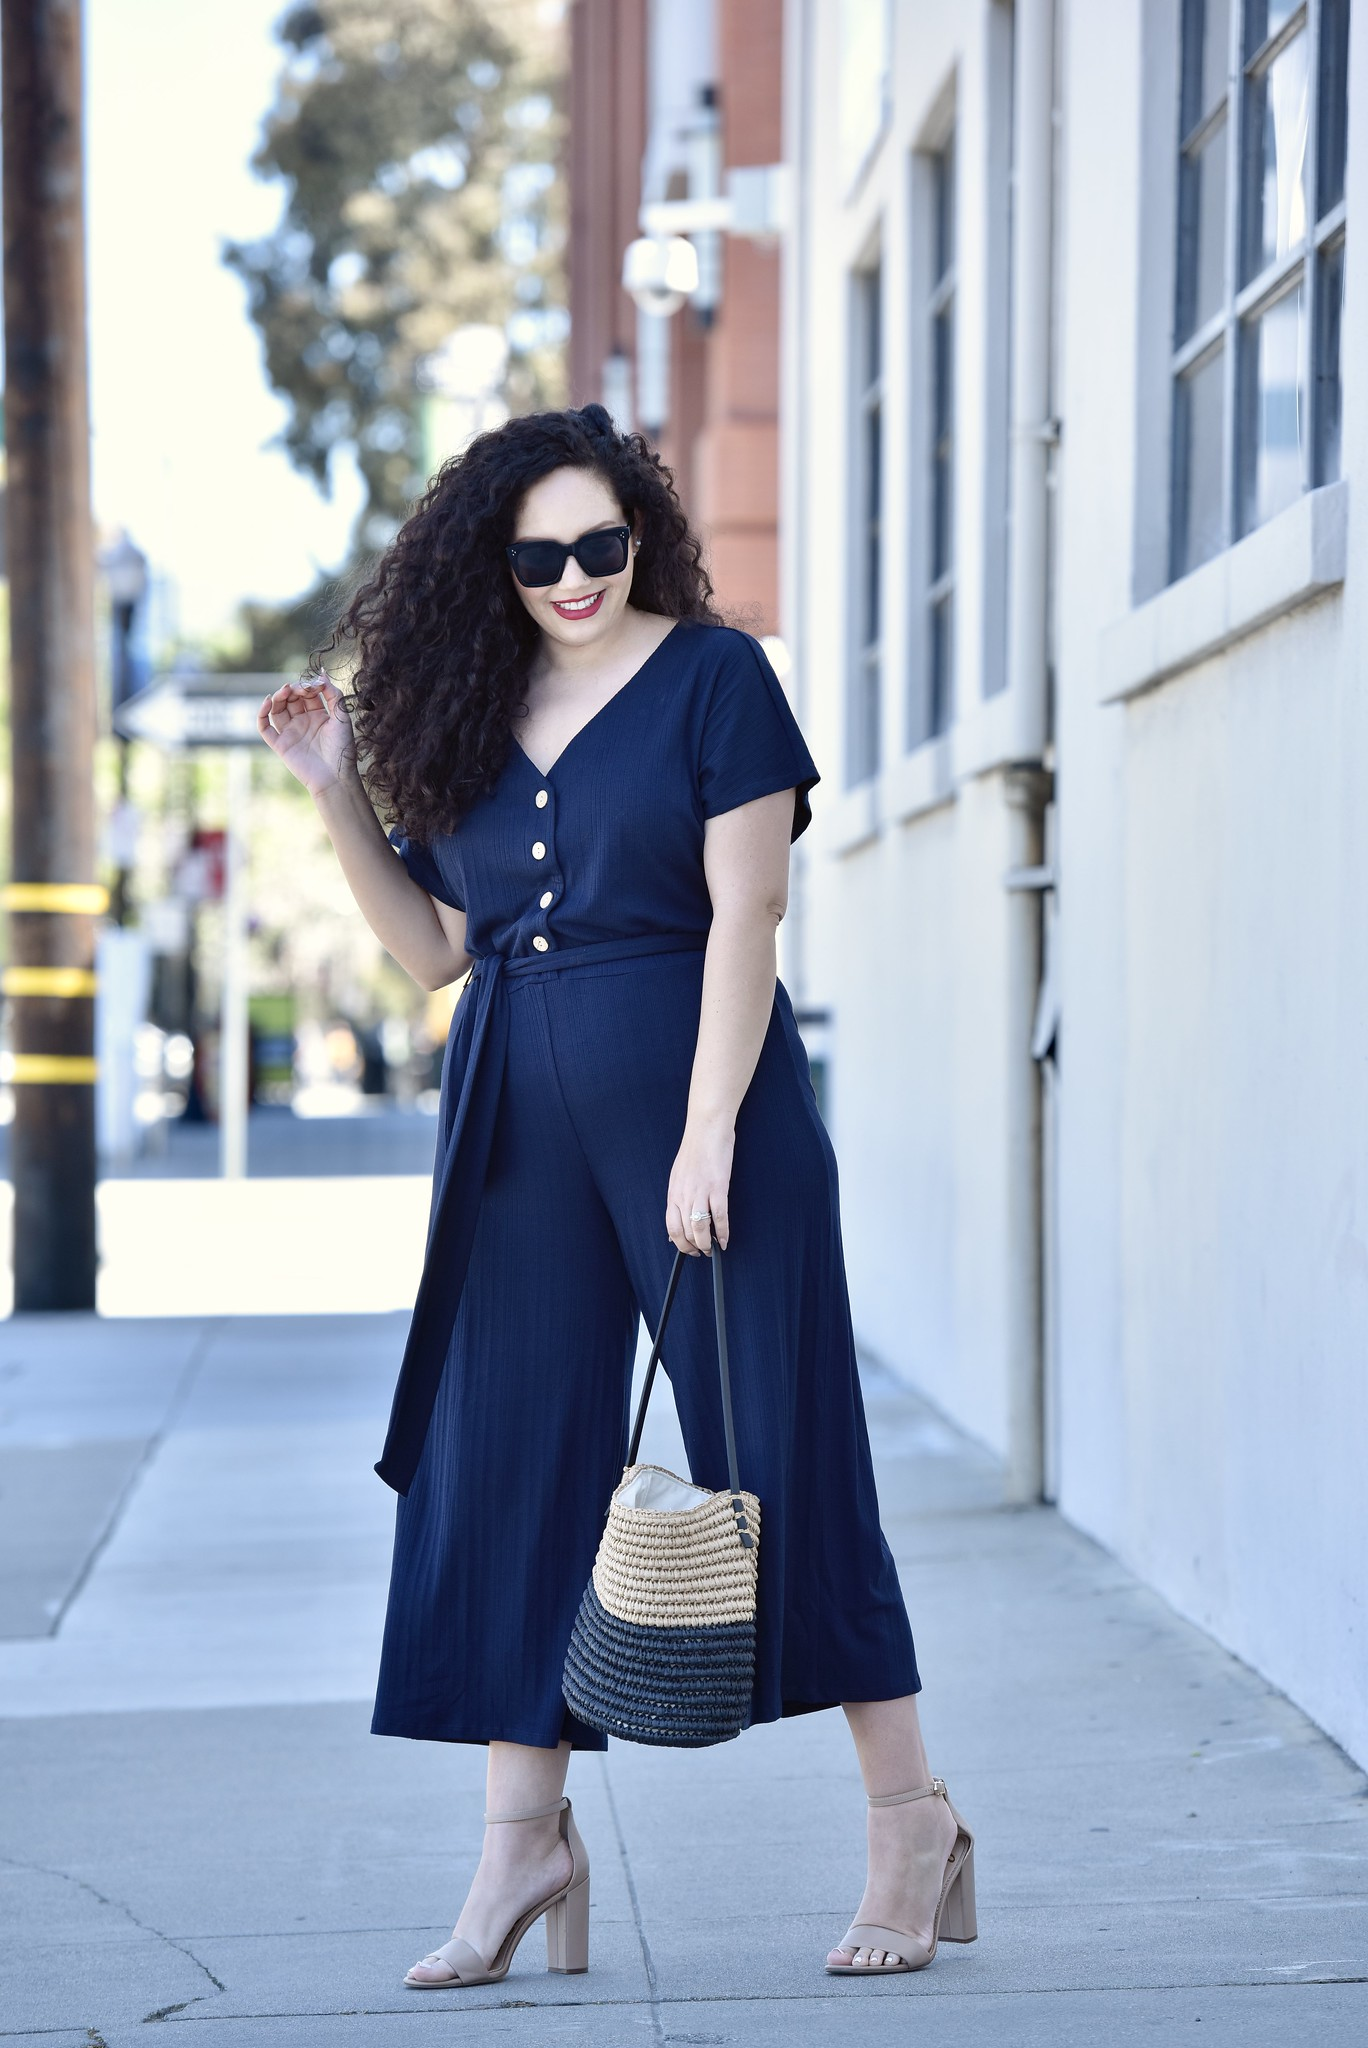 This Is What I Can't Stop Wearing Via @GirlWithCurves #jumpsuit #fashion #style #summer #spring #violeta #nars #celine